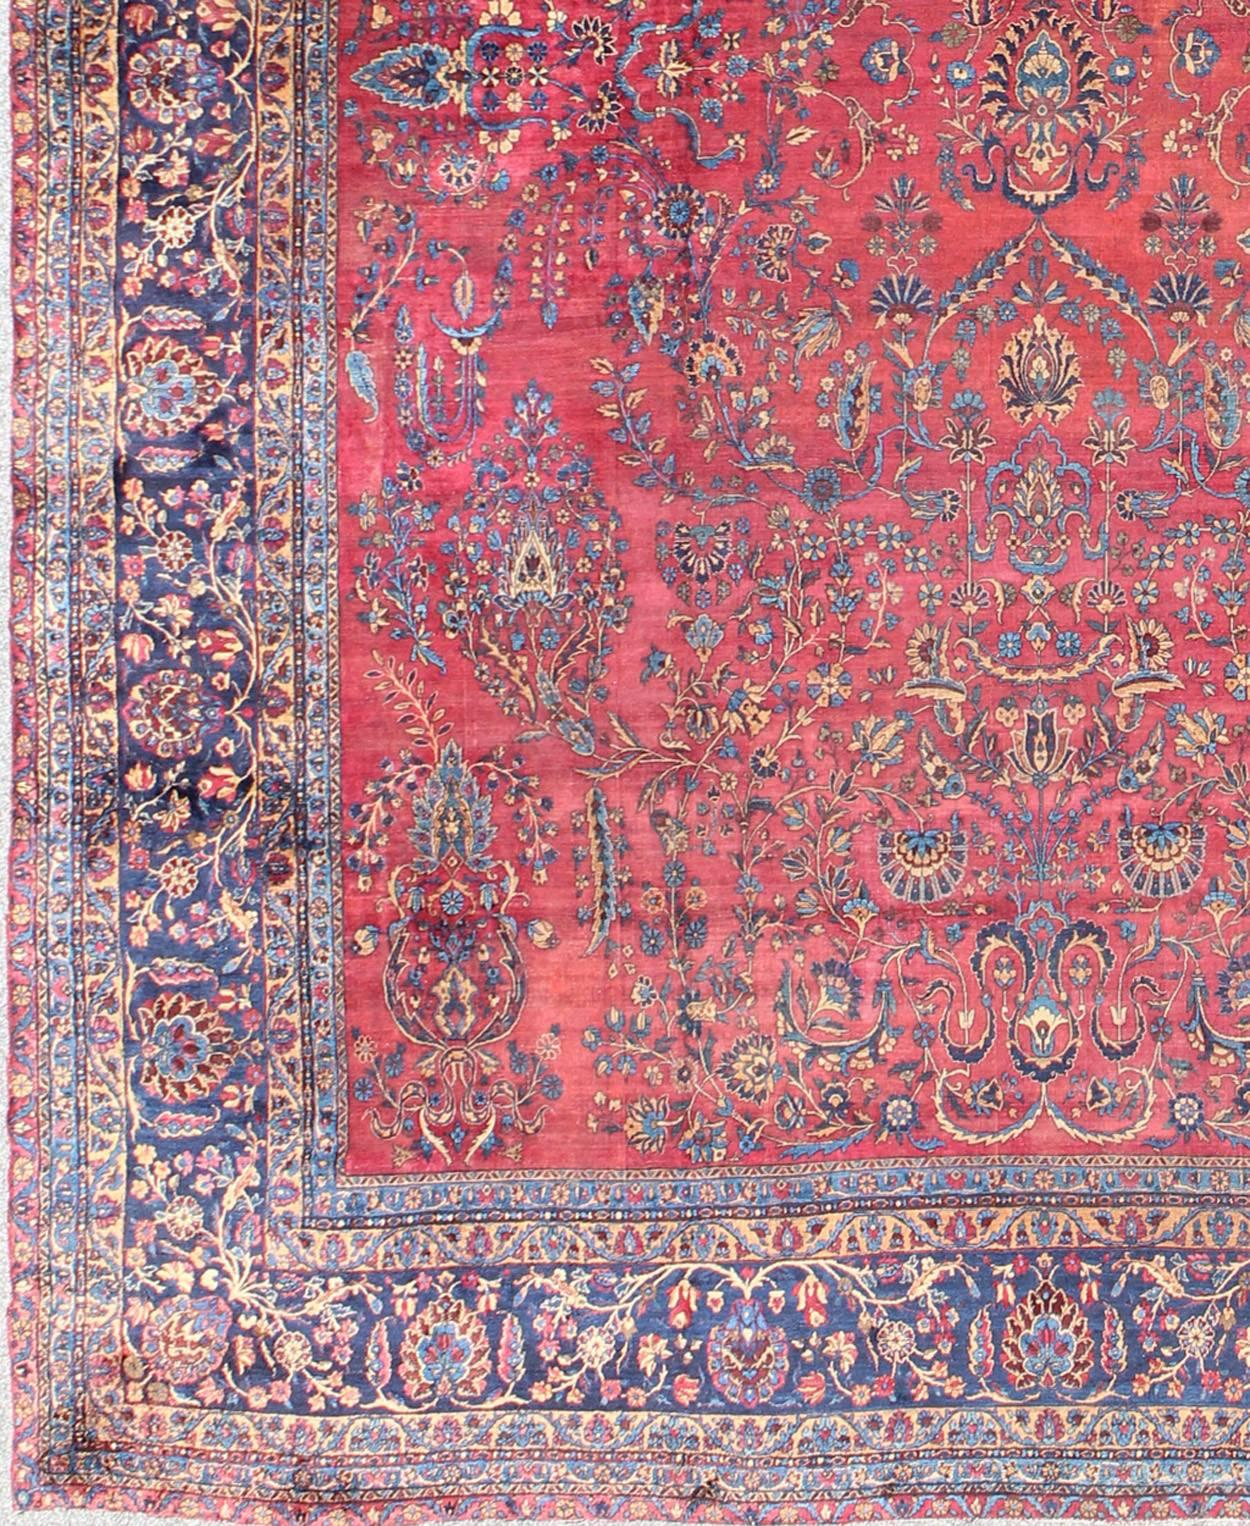 Antique Persian Kerman Rug With Cypress And Paisley Motifs 2